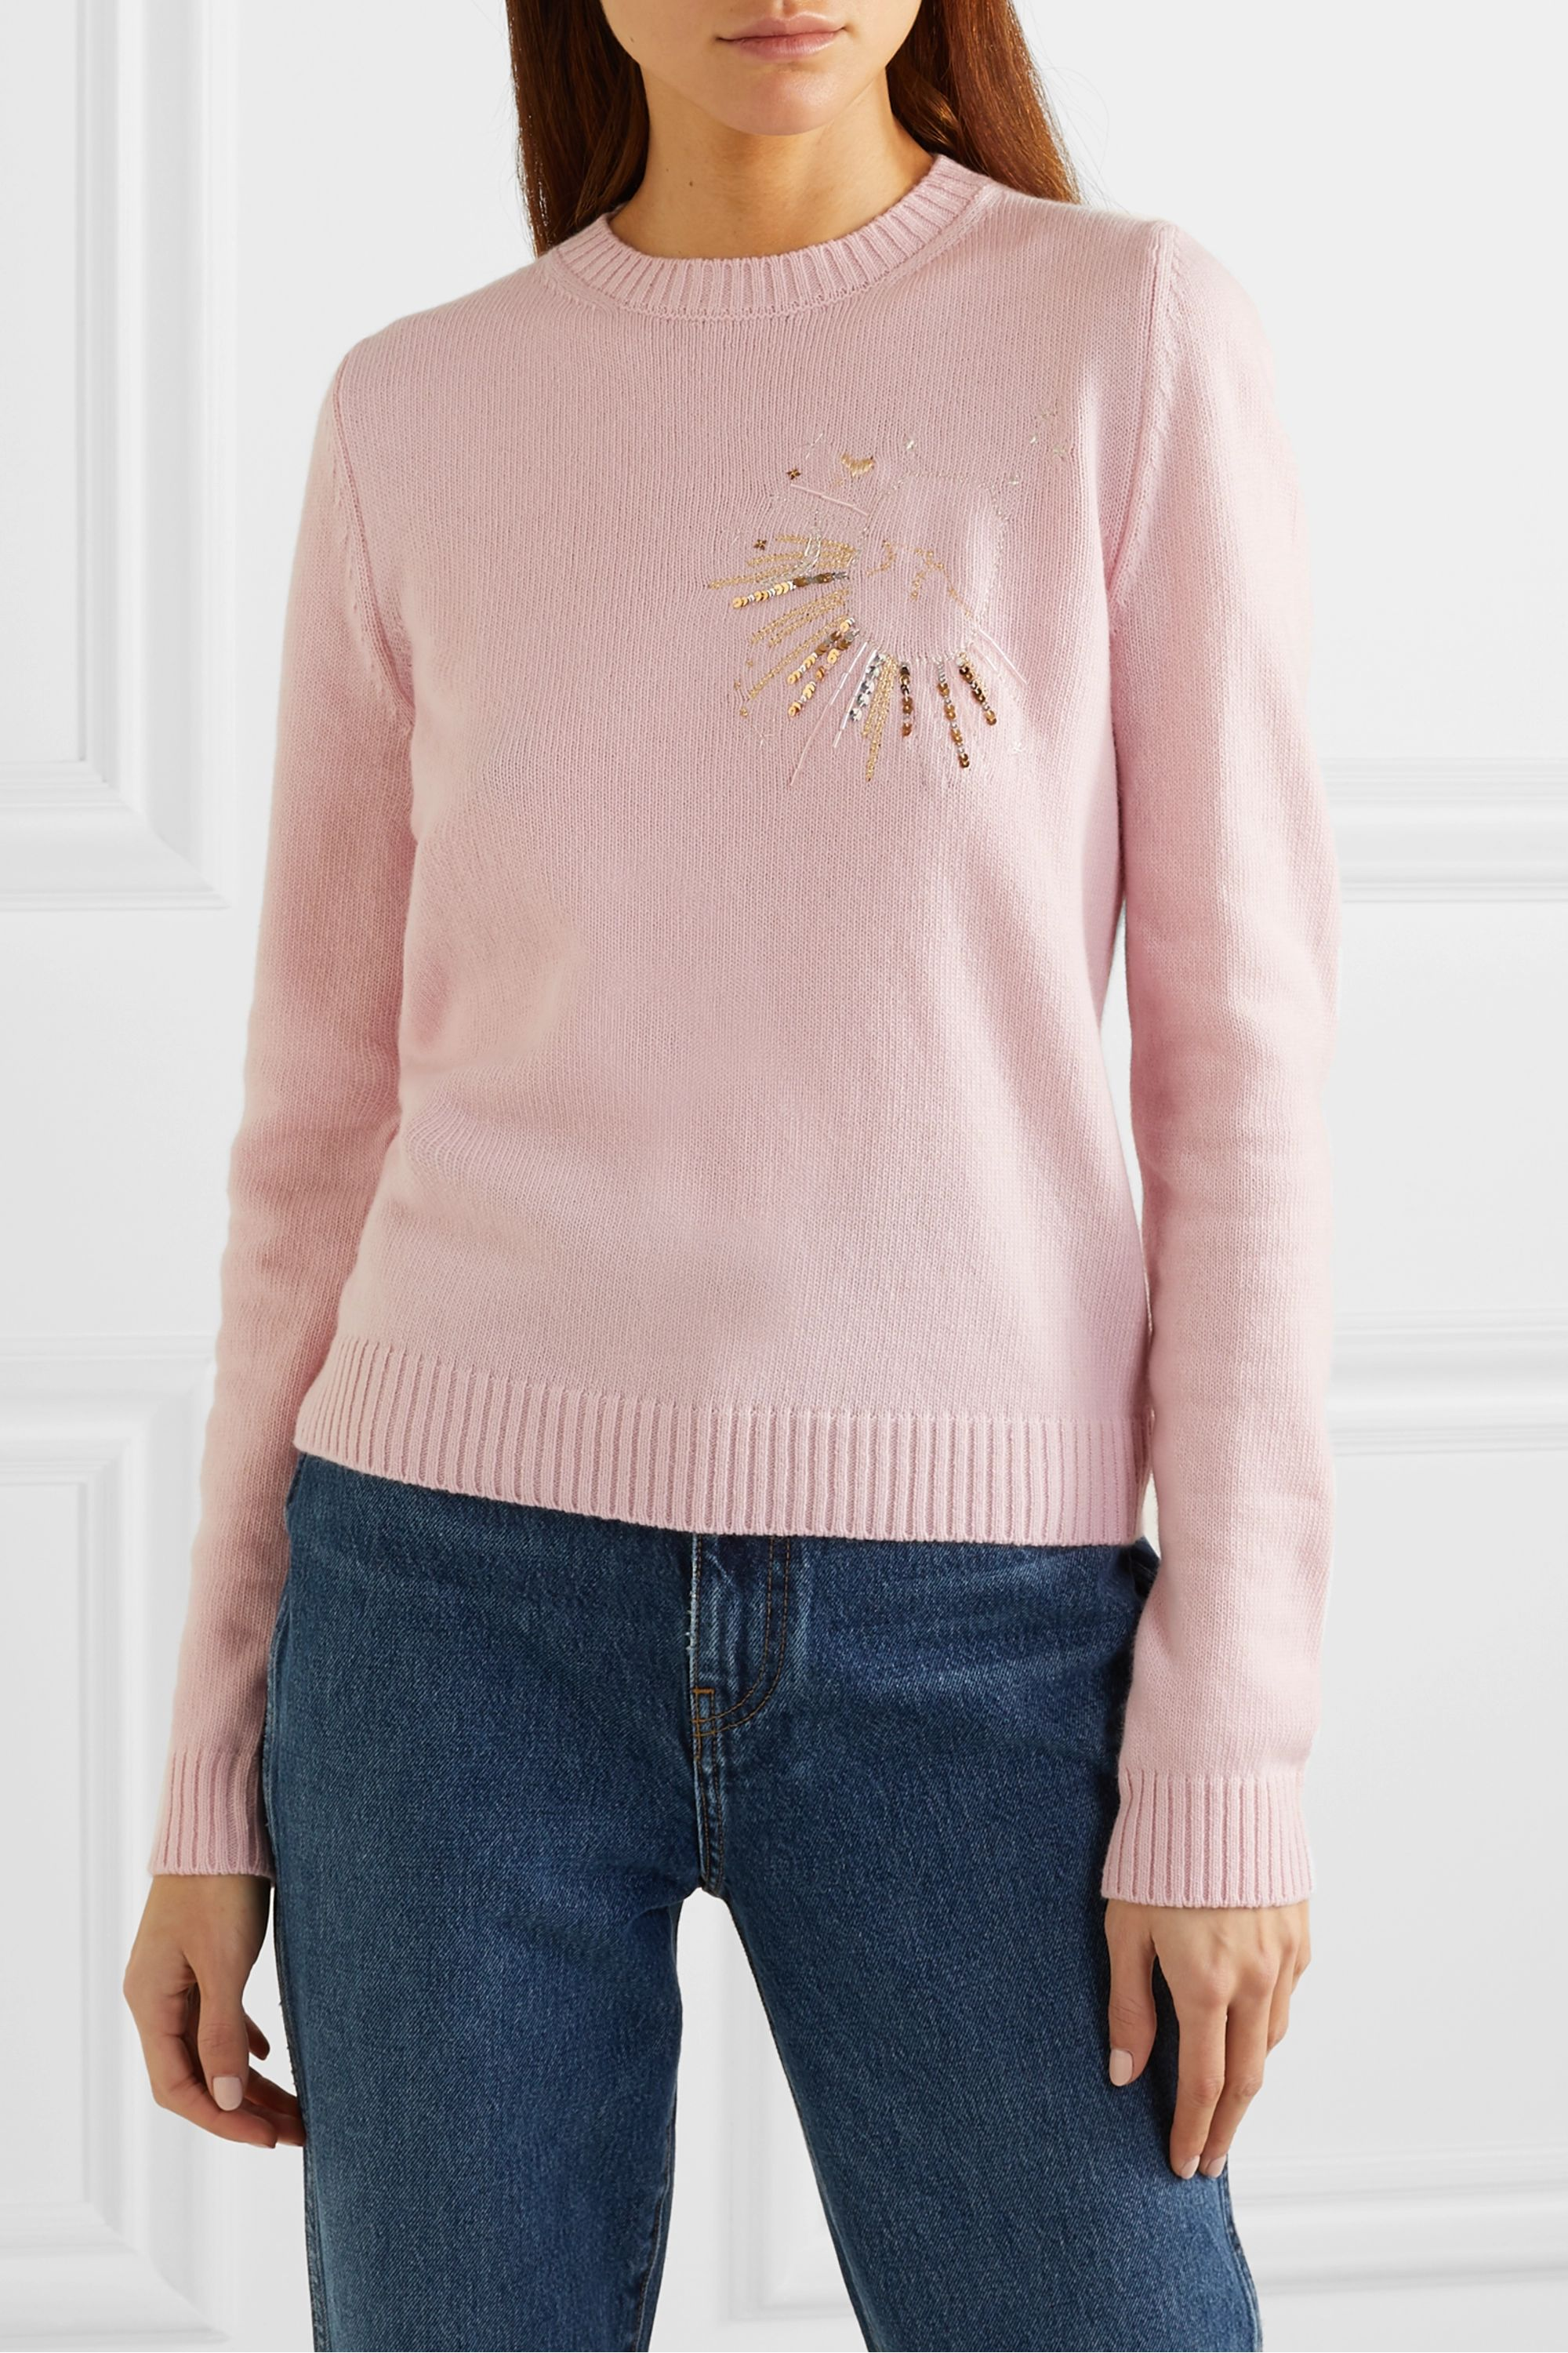 Le Lion Aquarius embellished embroidered wool sweater